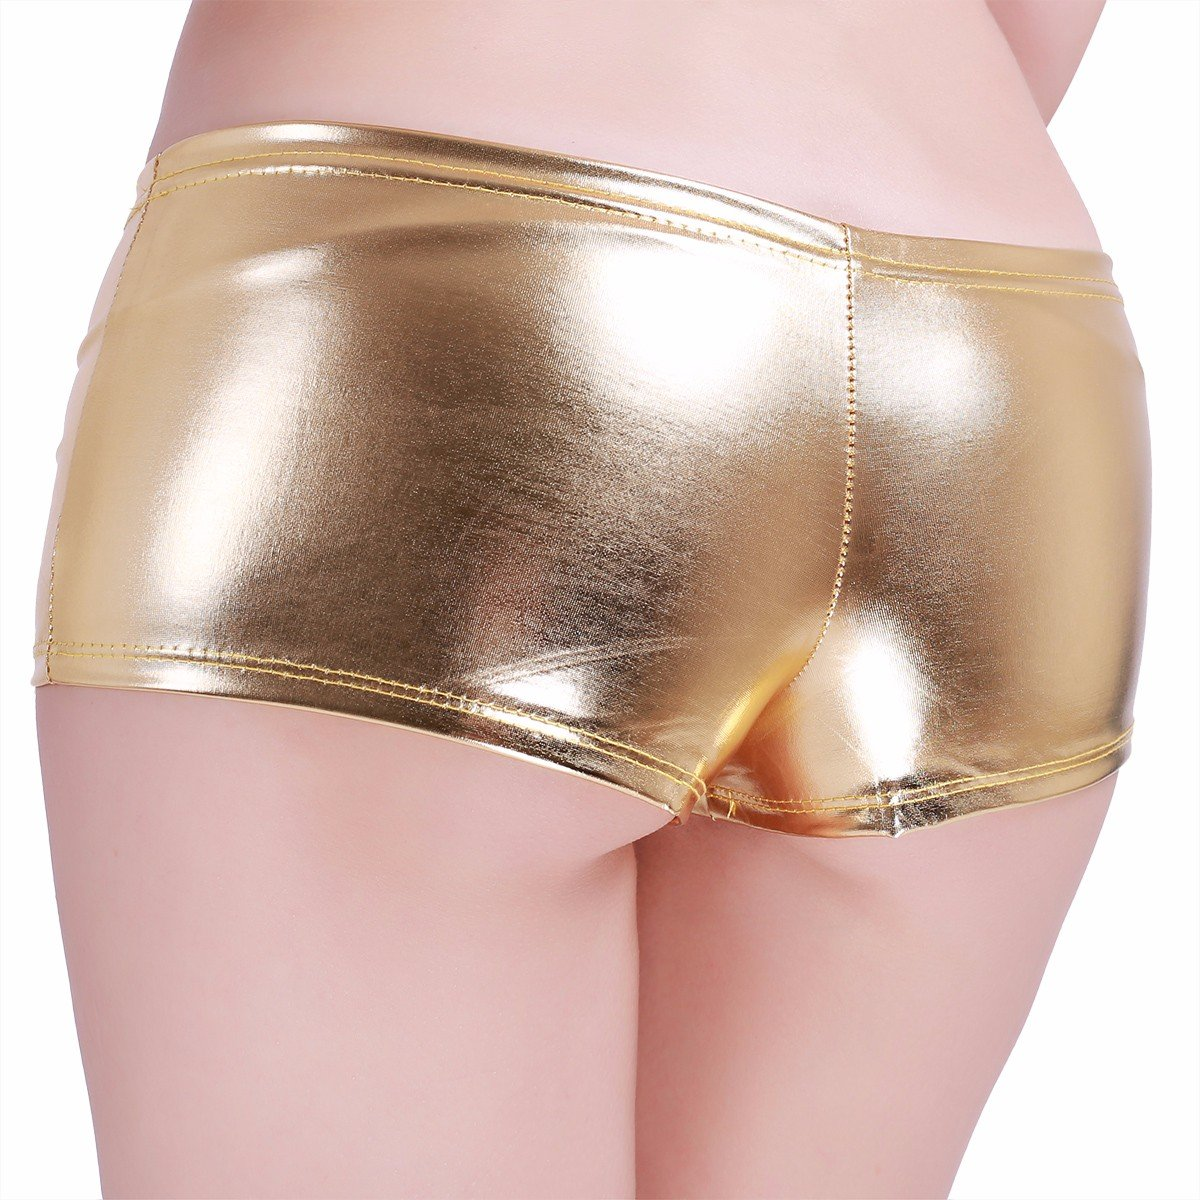 iEFiEL Womens Faux Leather Metallic Hipster Booty Shorts Lingerie Boyshorts Panties